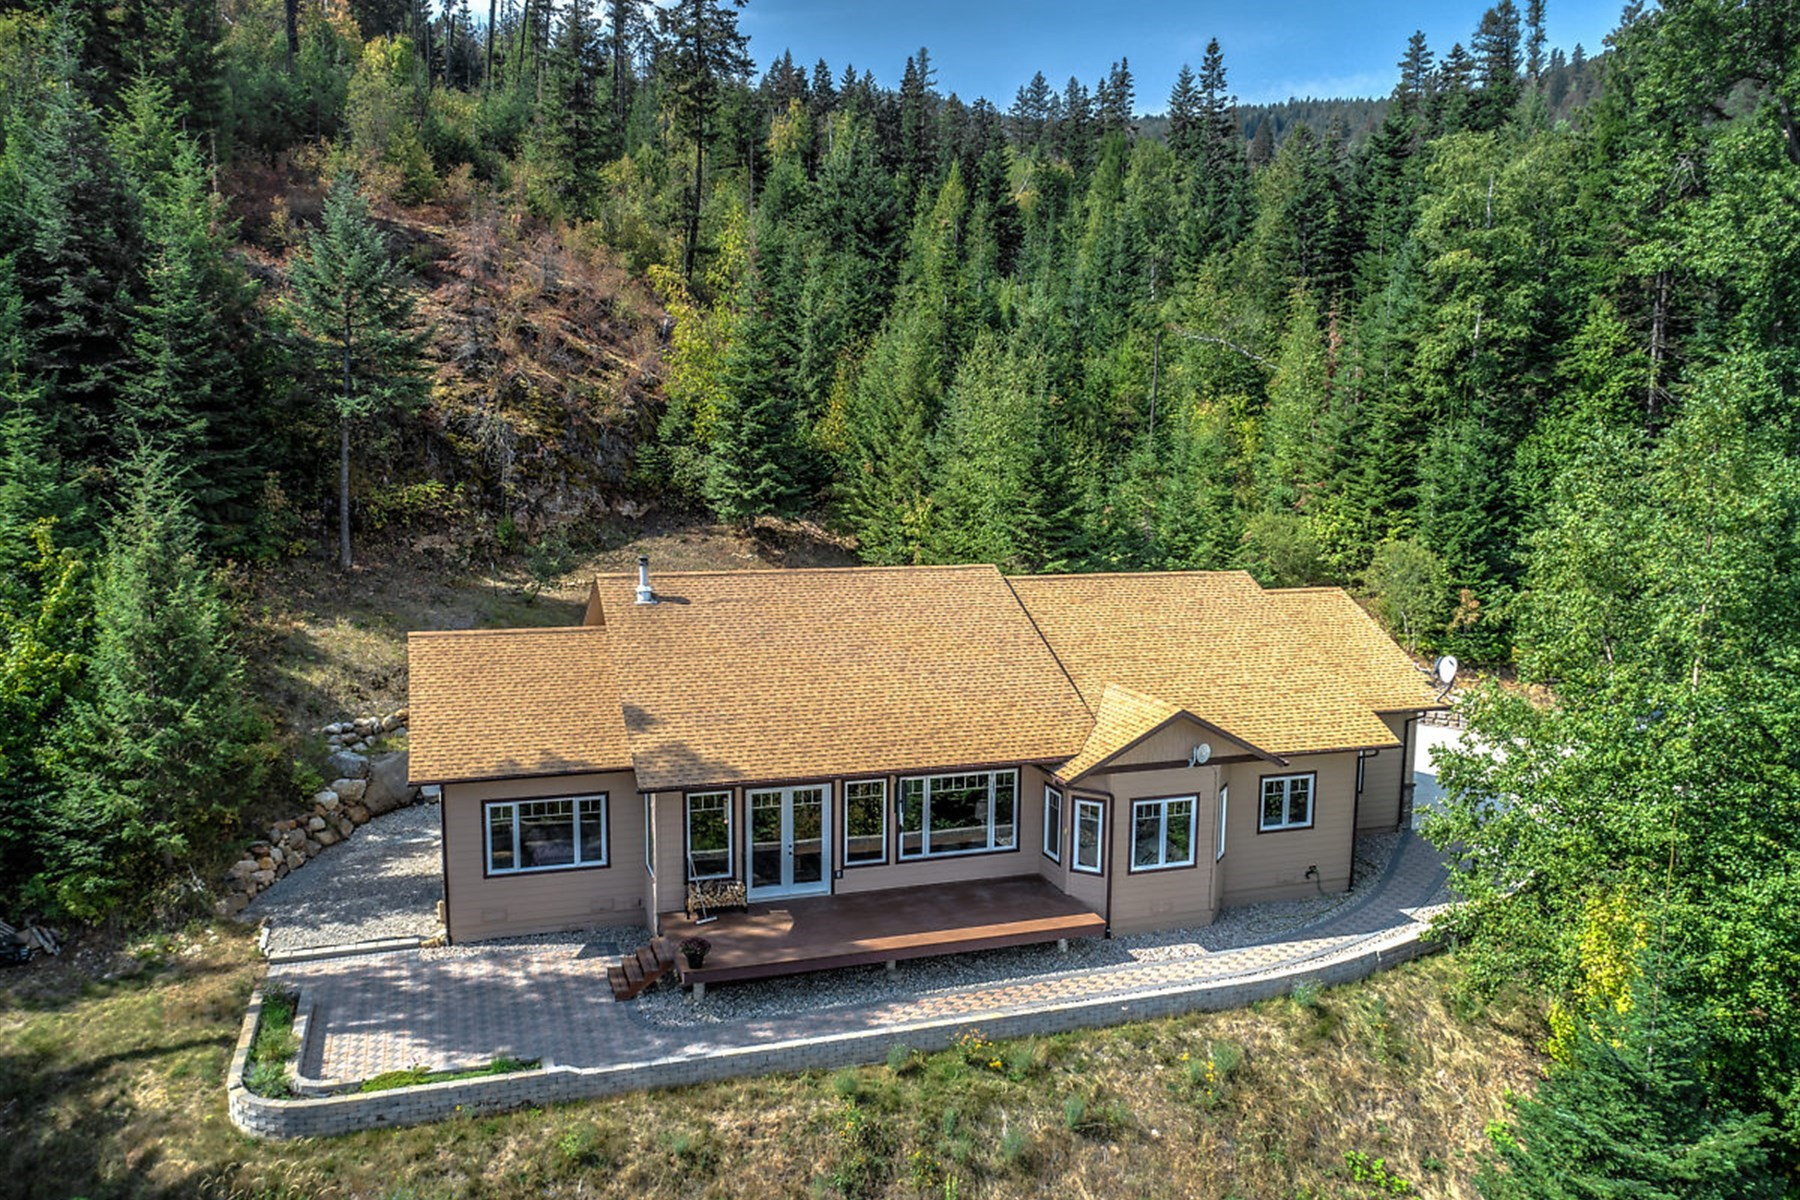 Single Family Home for Active at Outstanding River and Mountain Views 238 Nikita Dr Priest River, Idaho 83856 United States